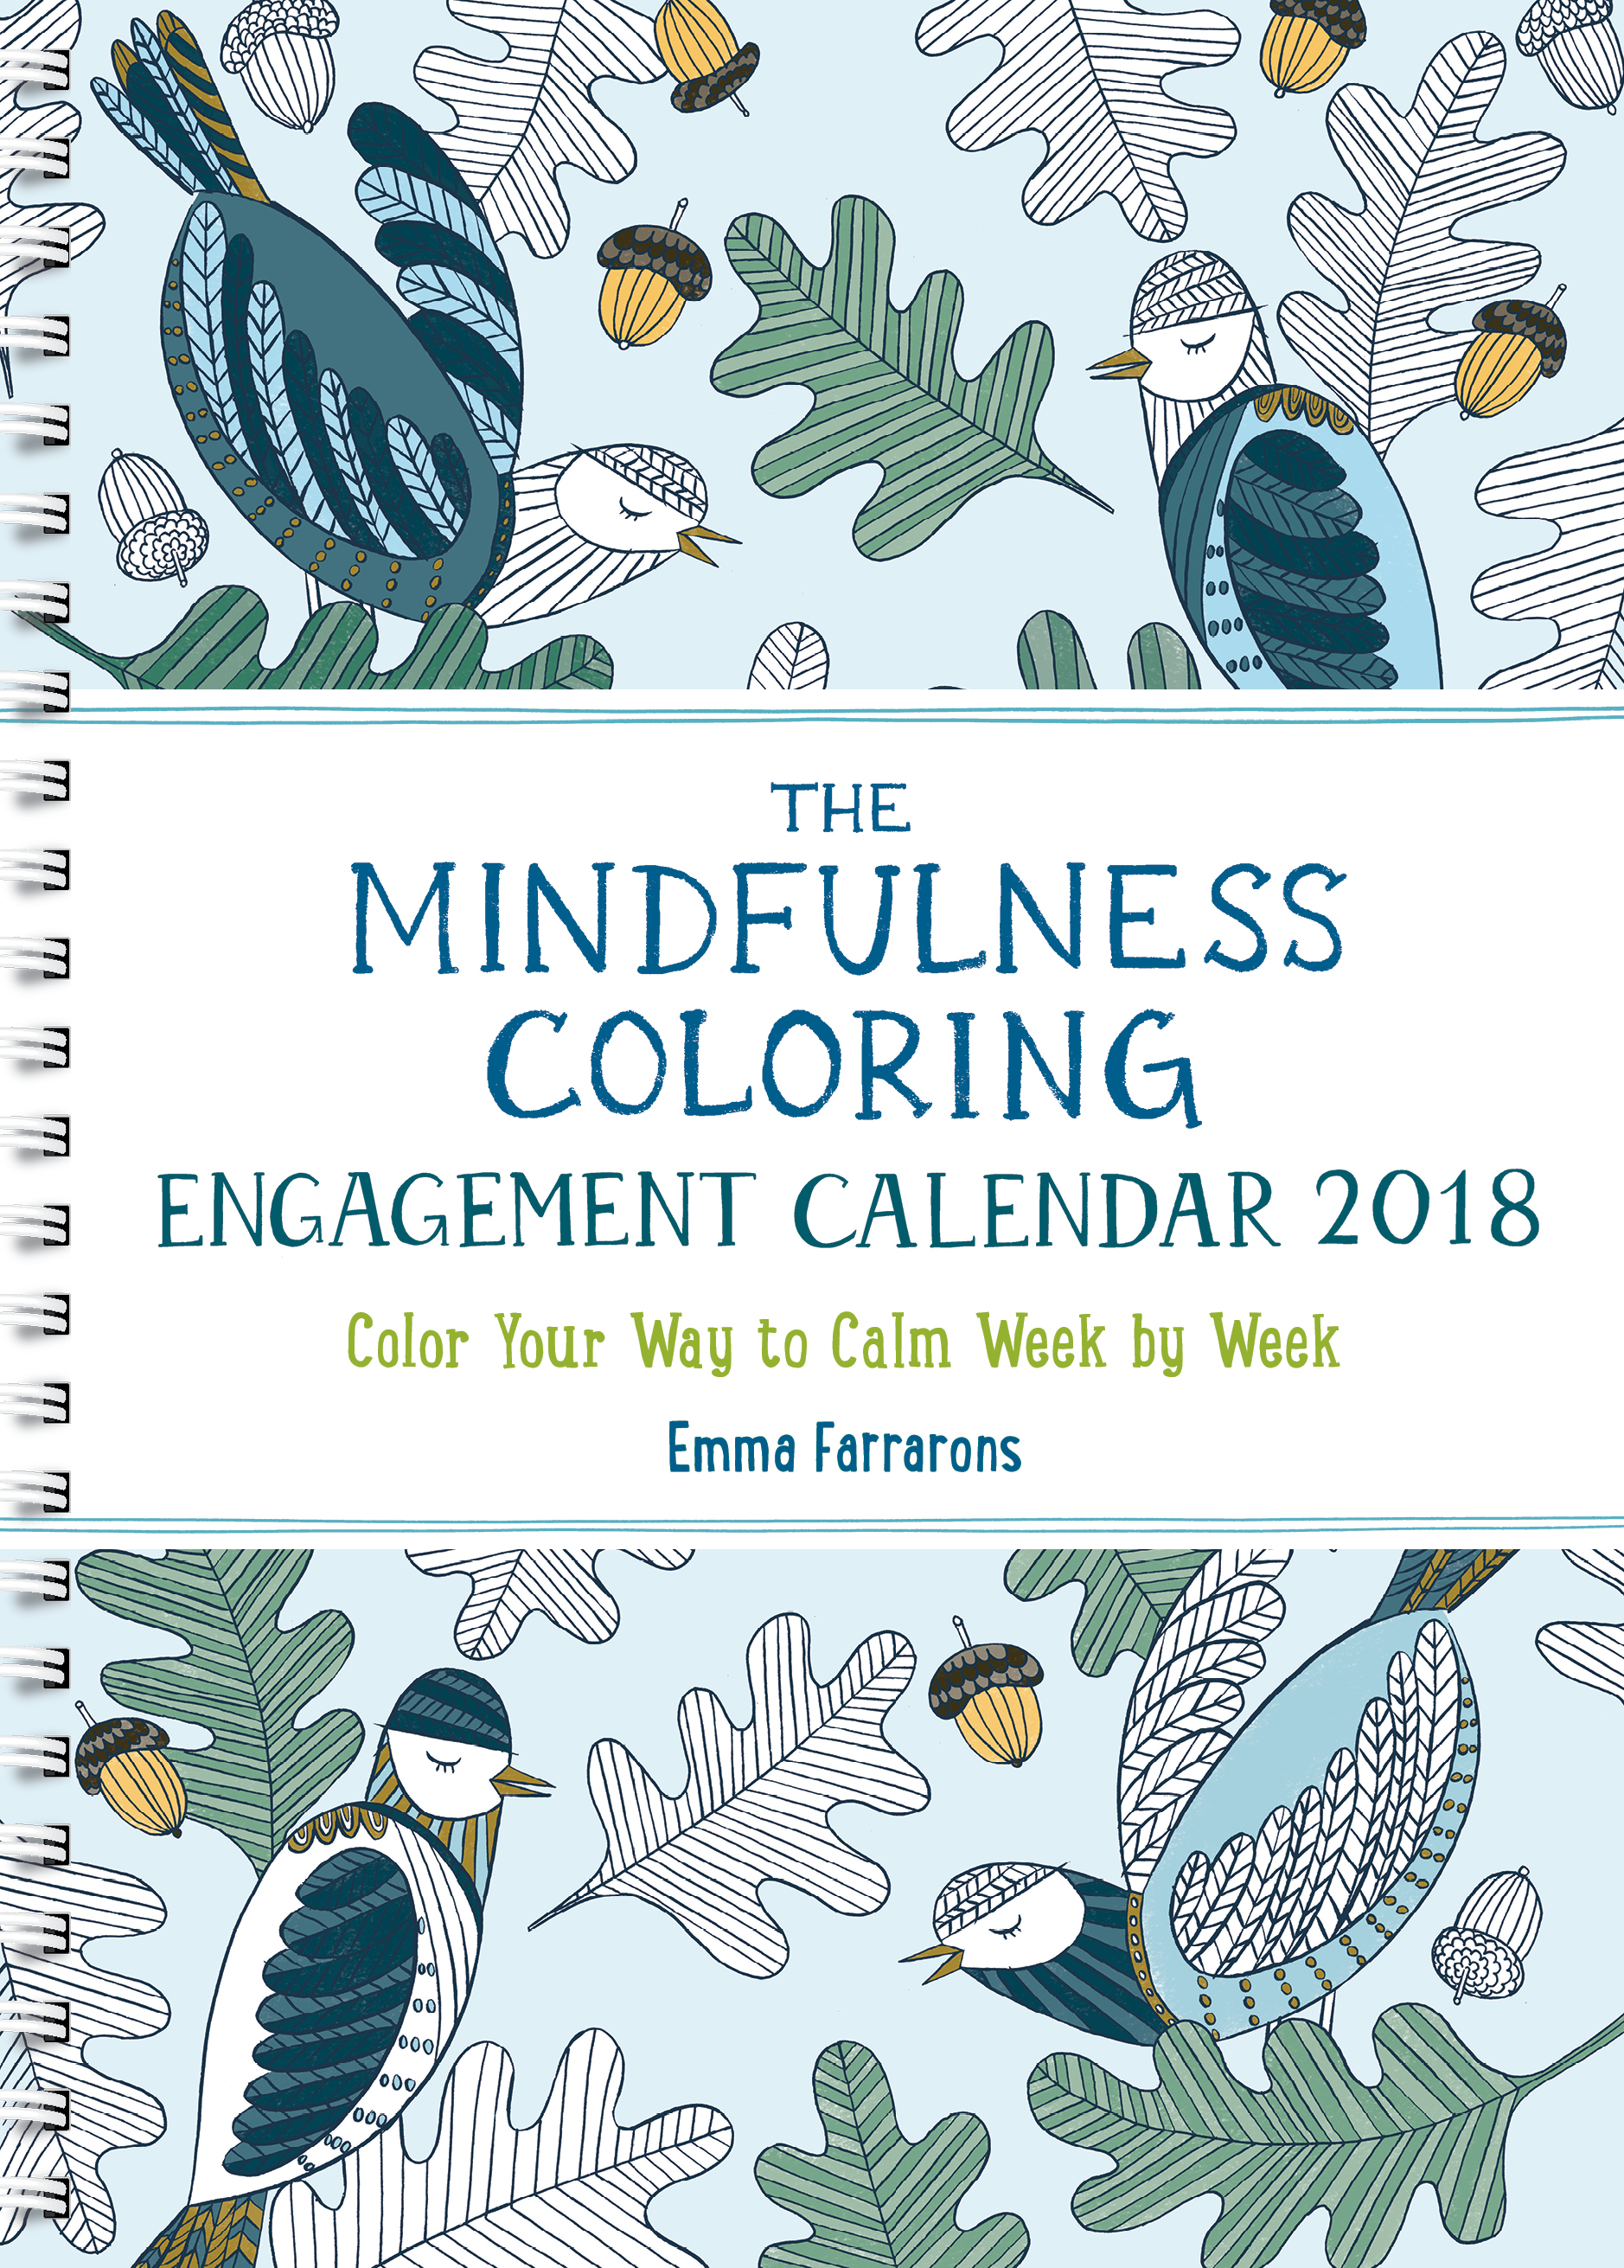 The Mindfulness Coloring Book Review : The Mindfulness Coloring Engagement Calendar 2018 The Experiment